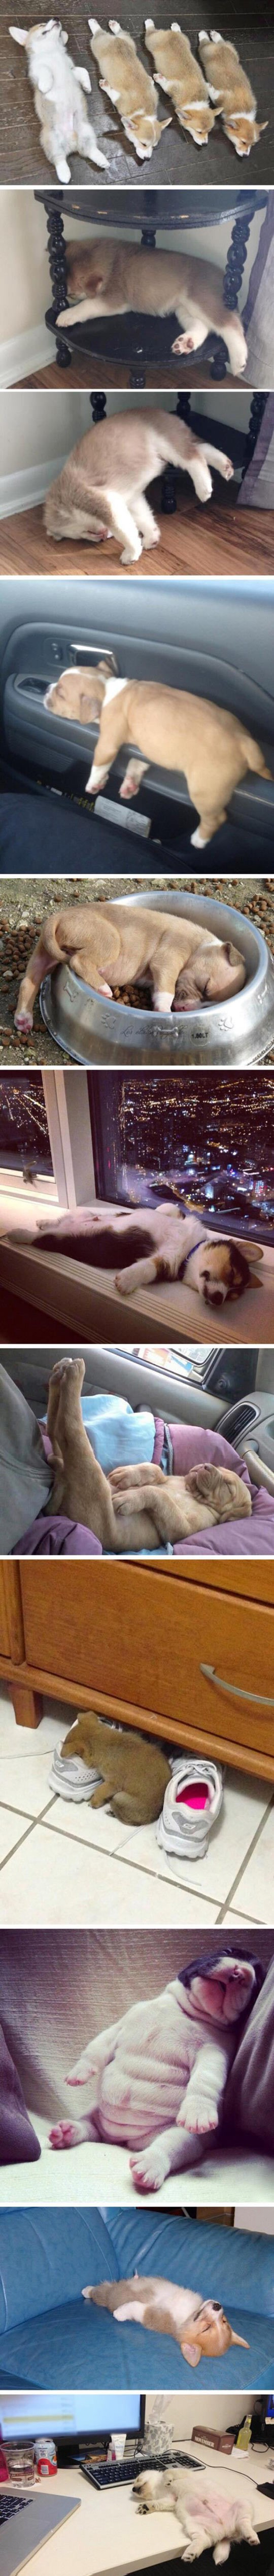 funny-dogs-sleeping-cute-puppies